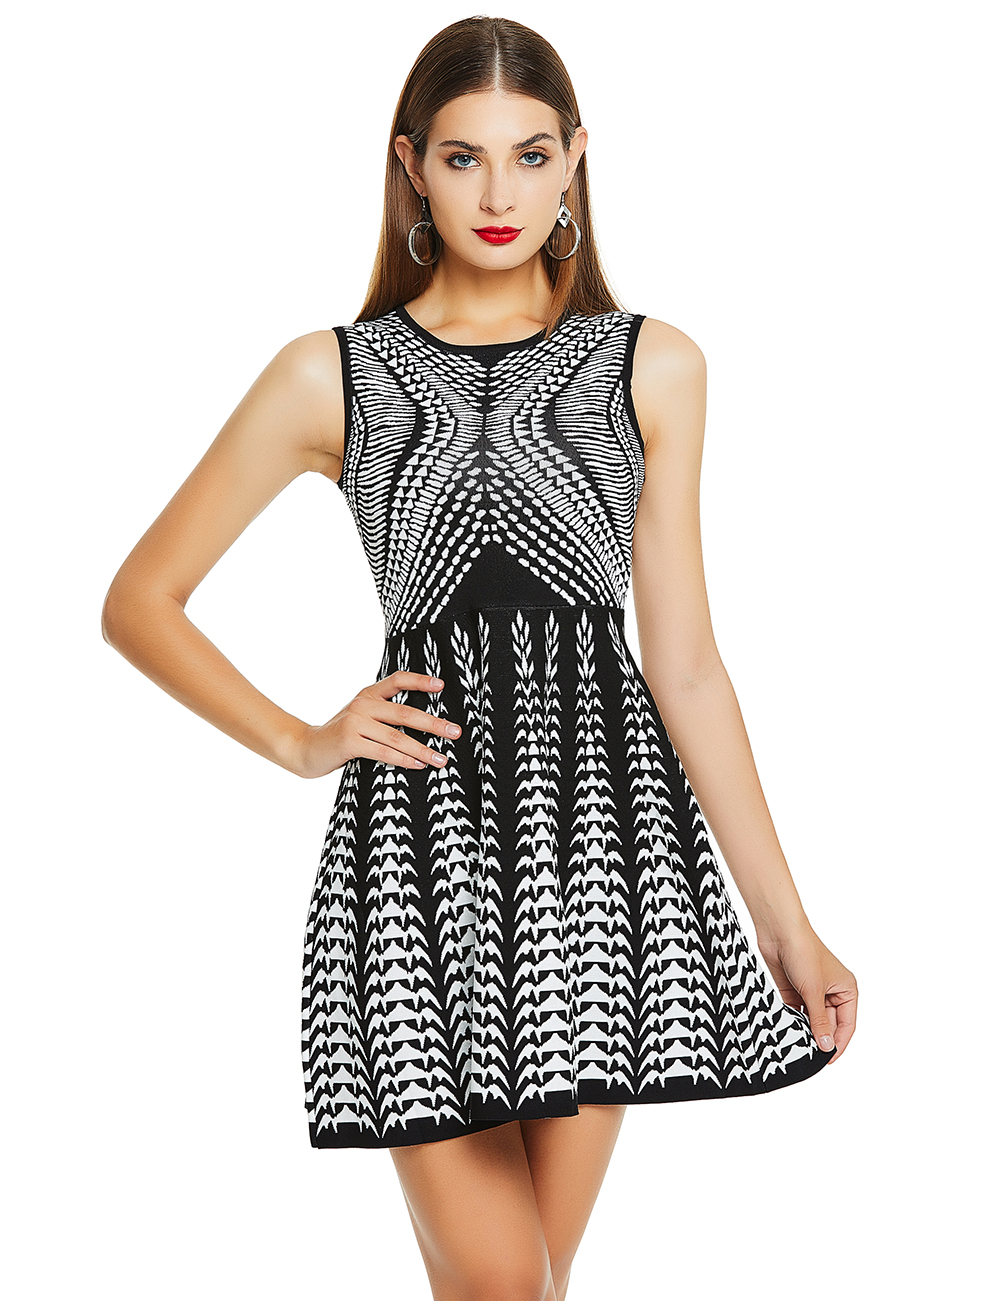 //cdn.affectcloud.com/feelingirldress/upload/imgs/2019-09-06/VZ191016-BK1/VZ191016-BK1-4.jpg